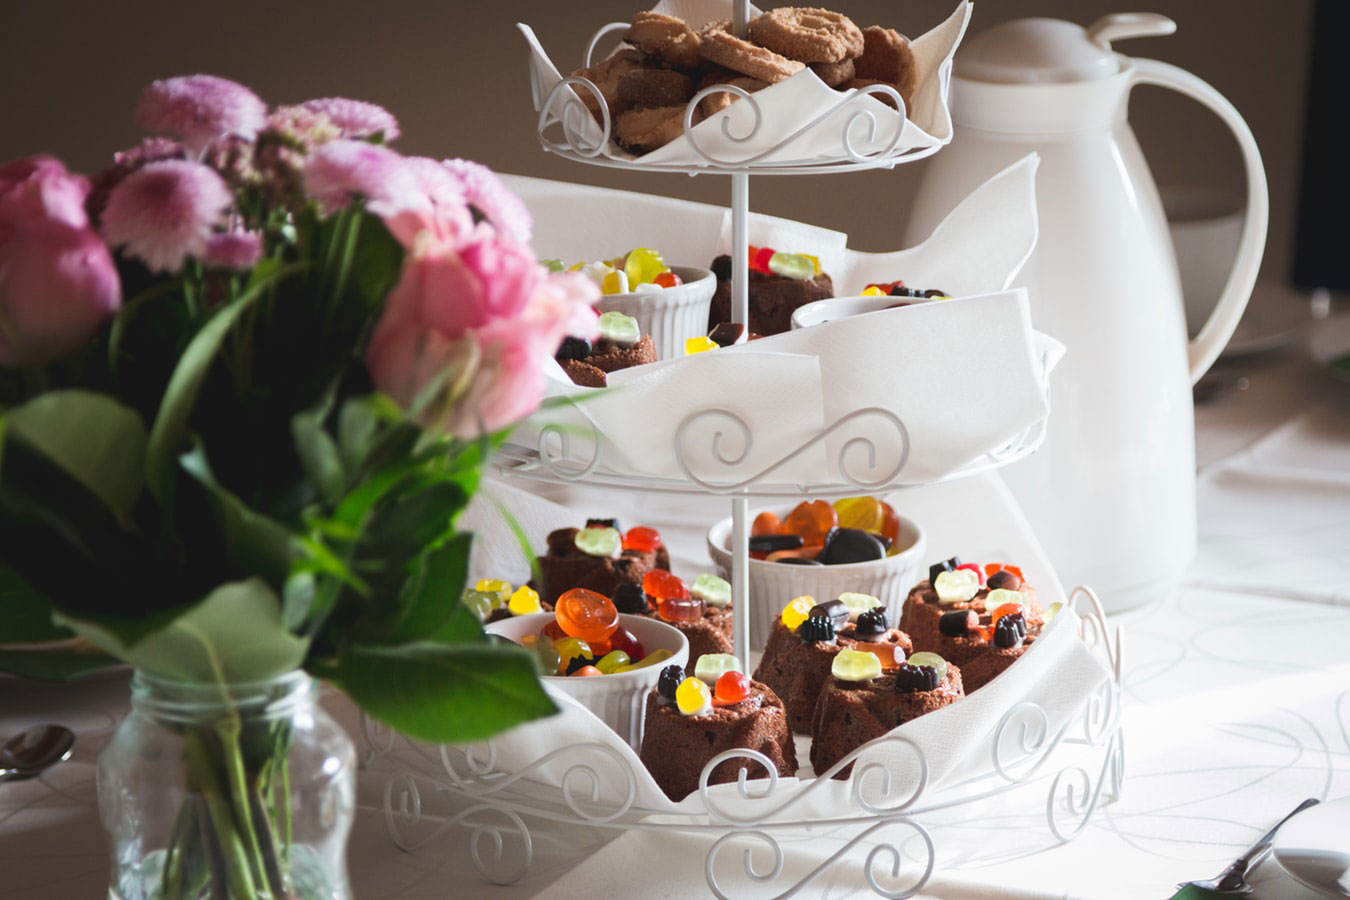 Cookies Cupcakes and Flowers| How To Throw The Perfect High Tea Party This Spring